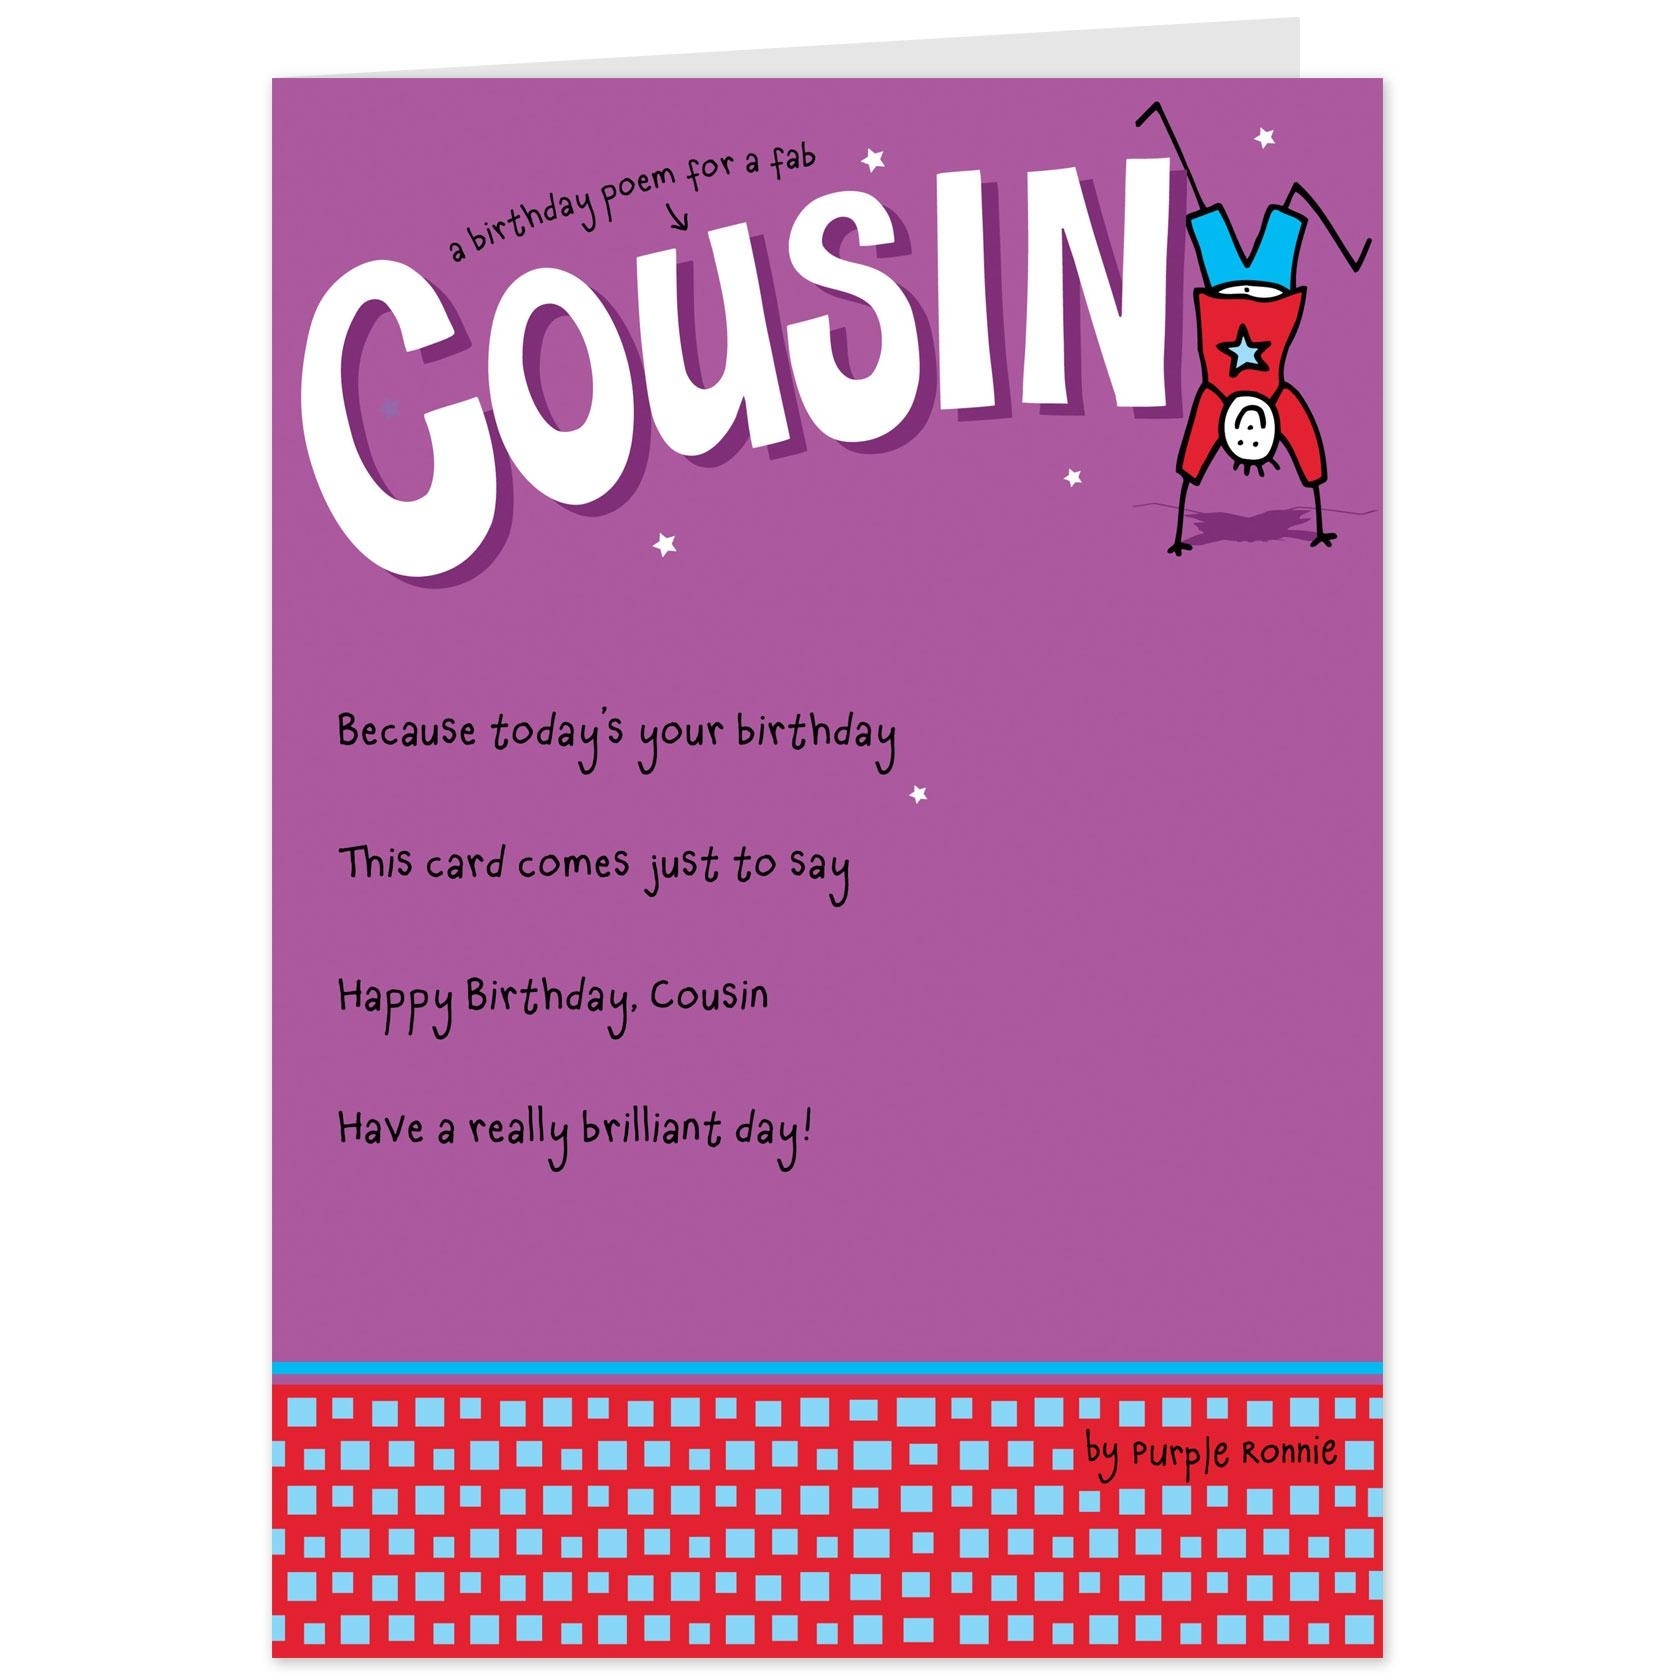 happy birthday cousin images and quotes ; funny-happy-birthday-cousin-pictures-funny-happy-birthday-cousin-pictures-beautiful-happiness-quotes-fascinating-happy-birthday-cousin-quotes-funny